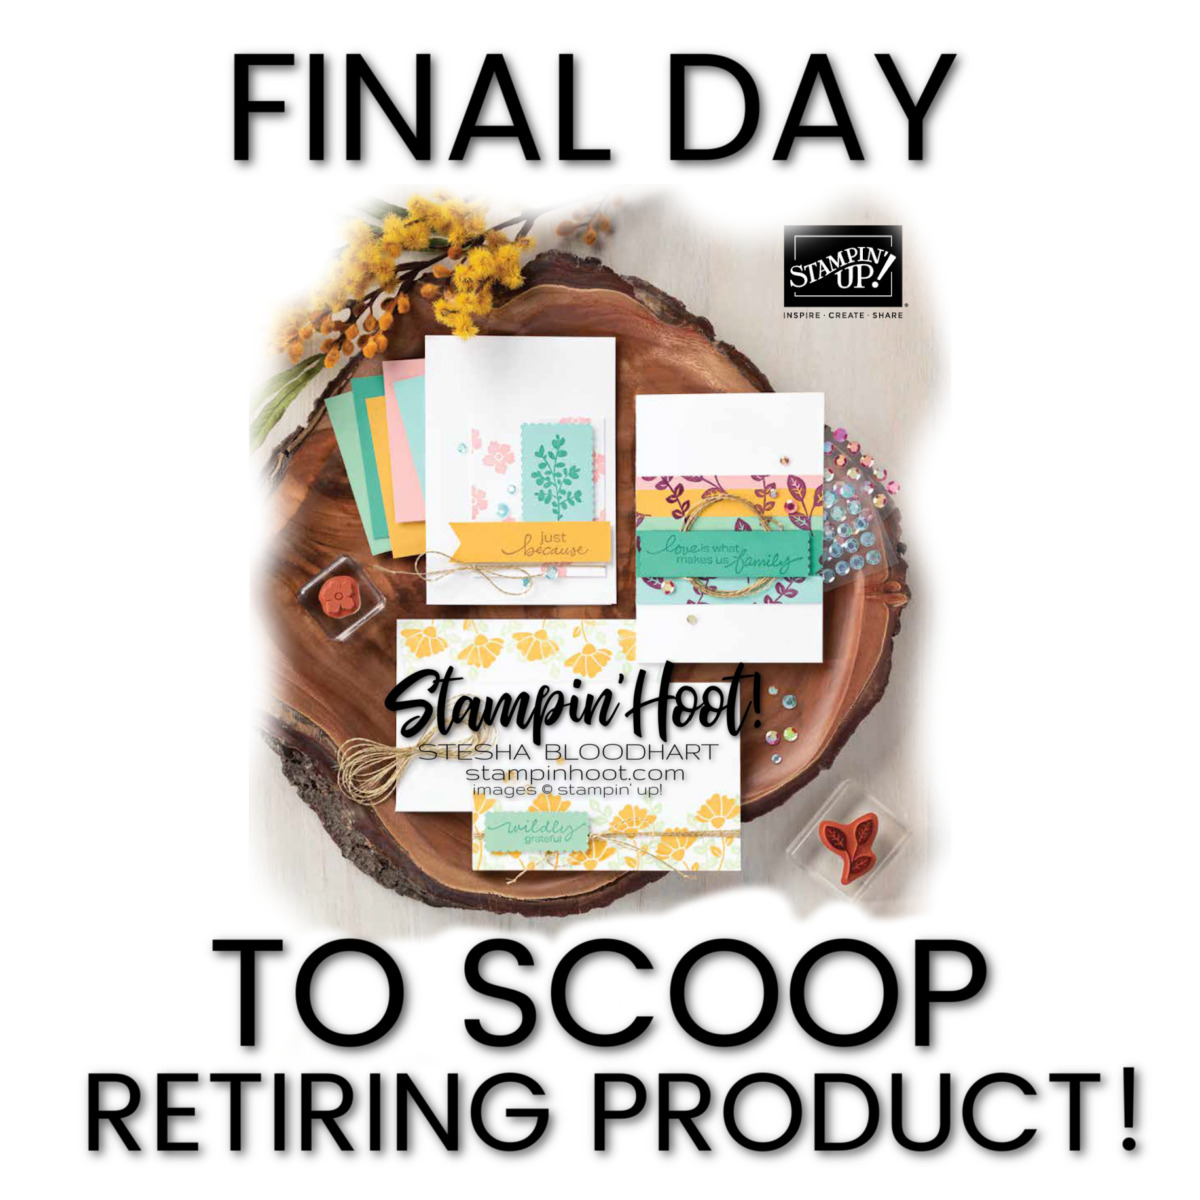 Final day Retiring Items 2020-2021 Annual Catalog from Stampin' Up!